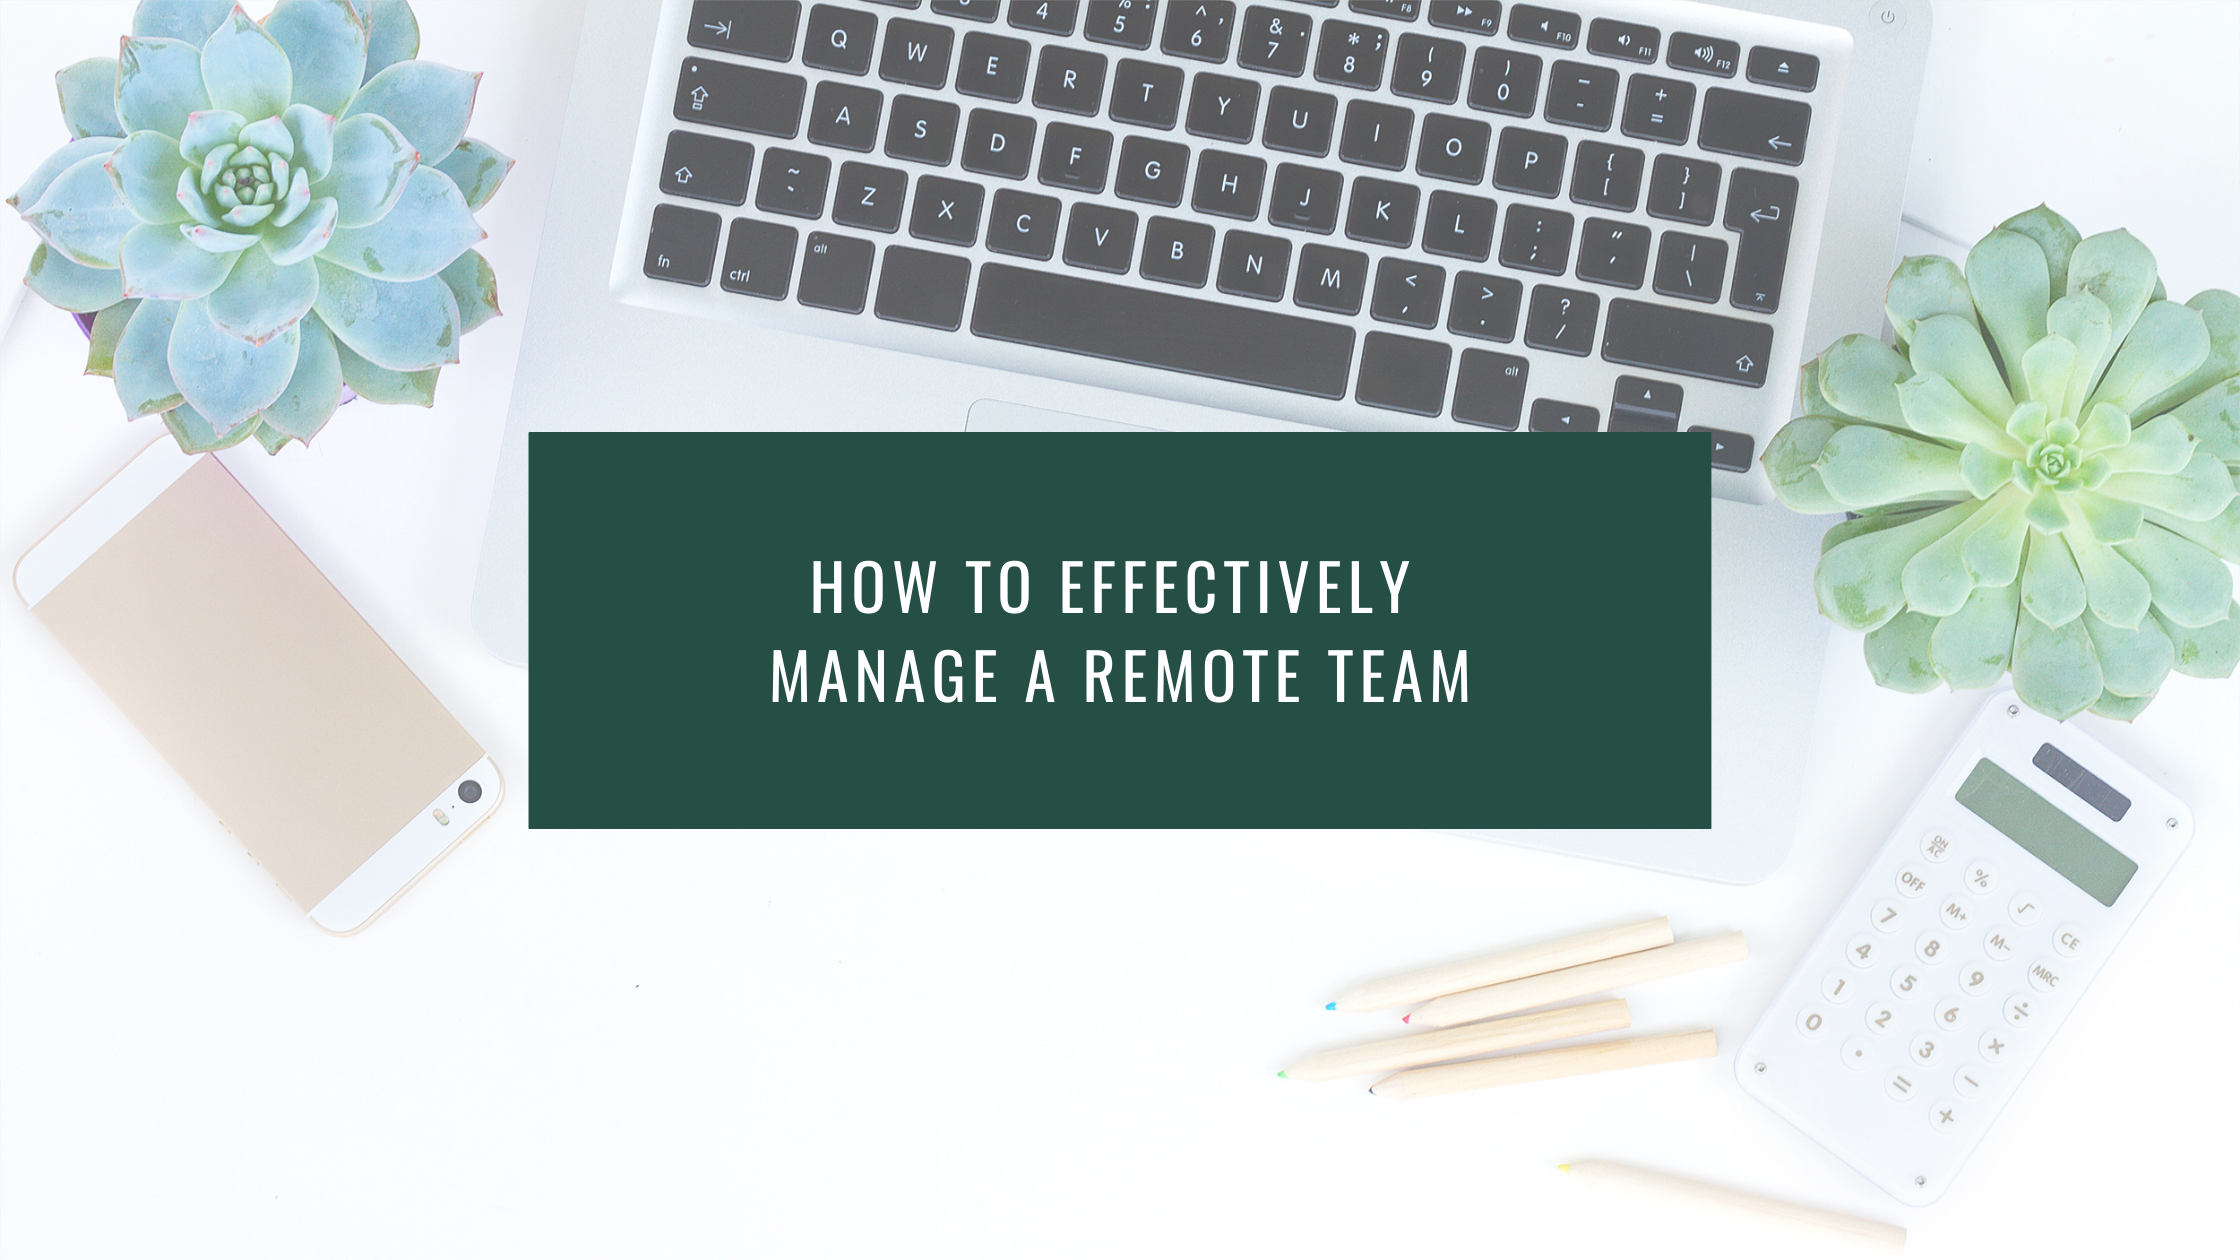 How to effectively manage a remote team